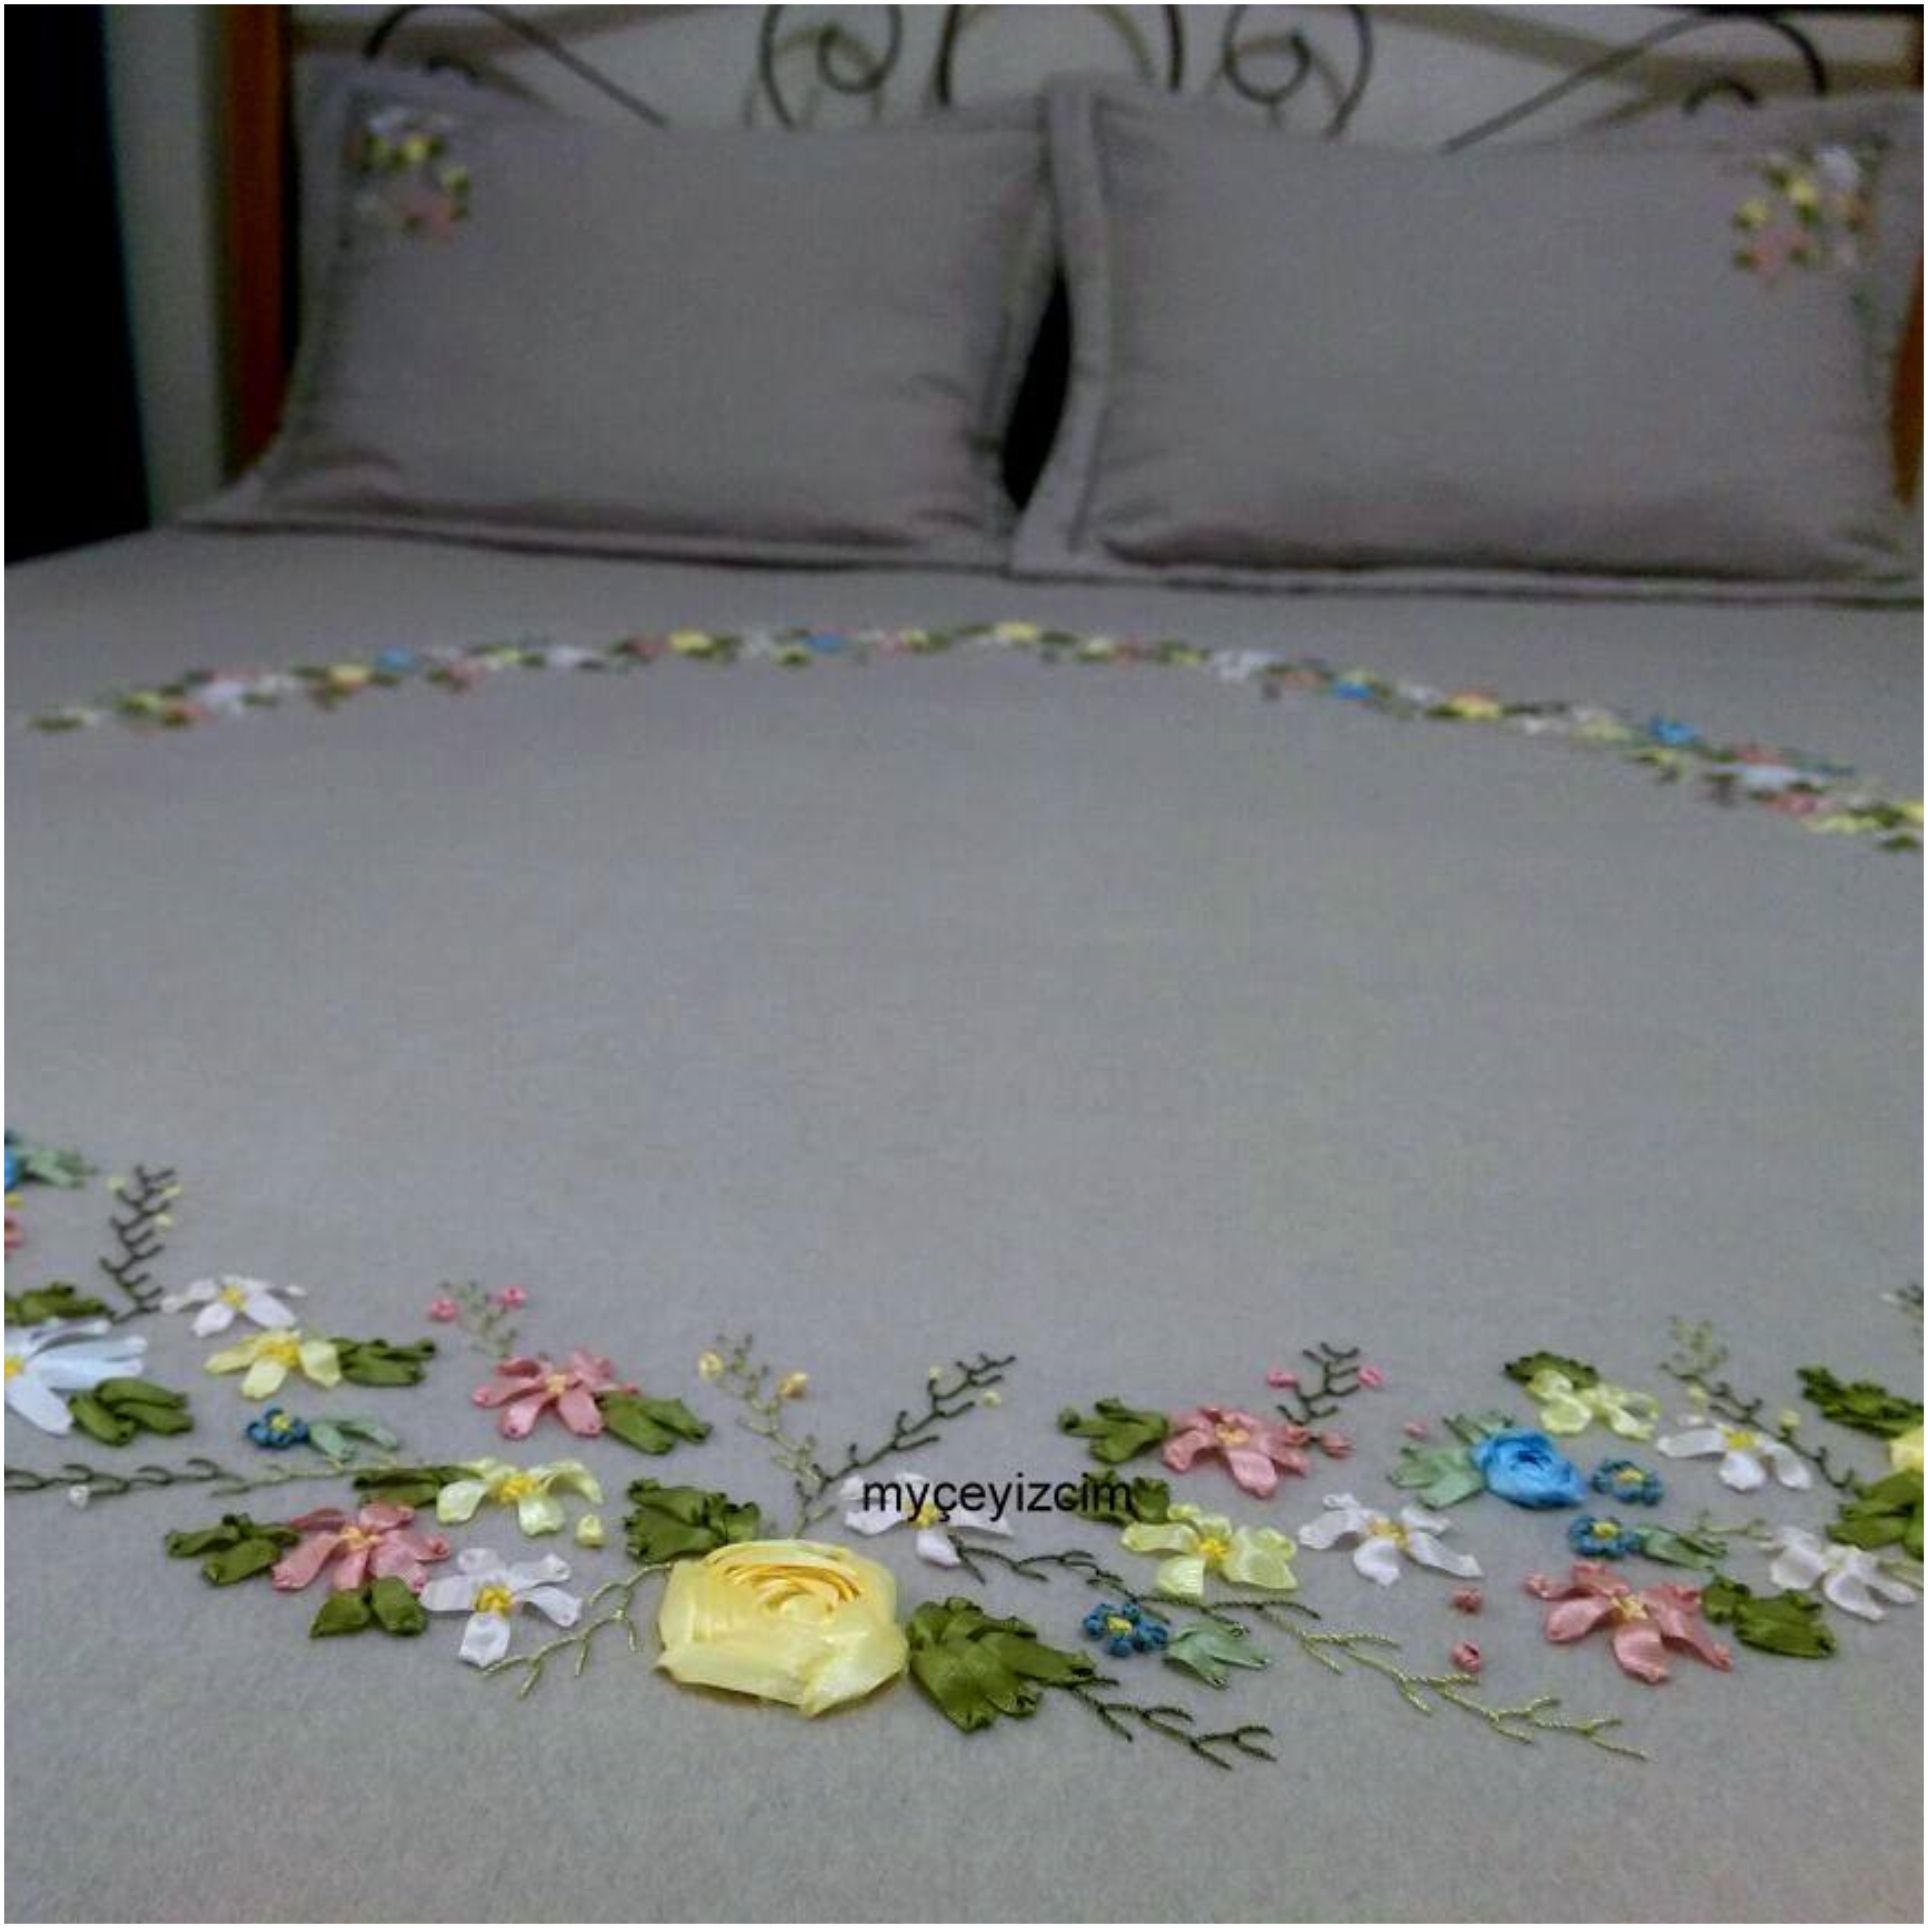 Ribbon embroidery bedspread designs - Explore Broderie Tutorial Ribbon Embroidery And More